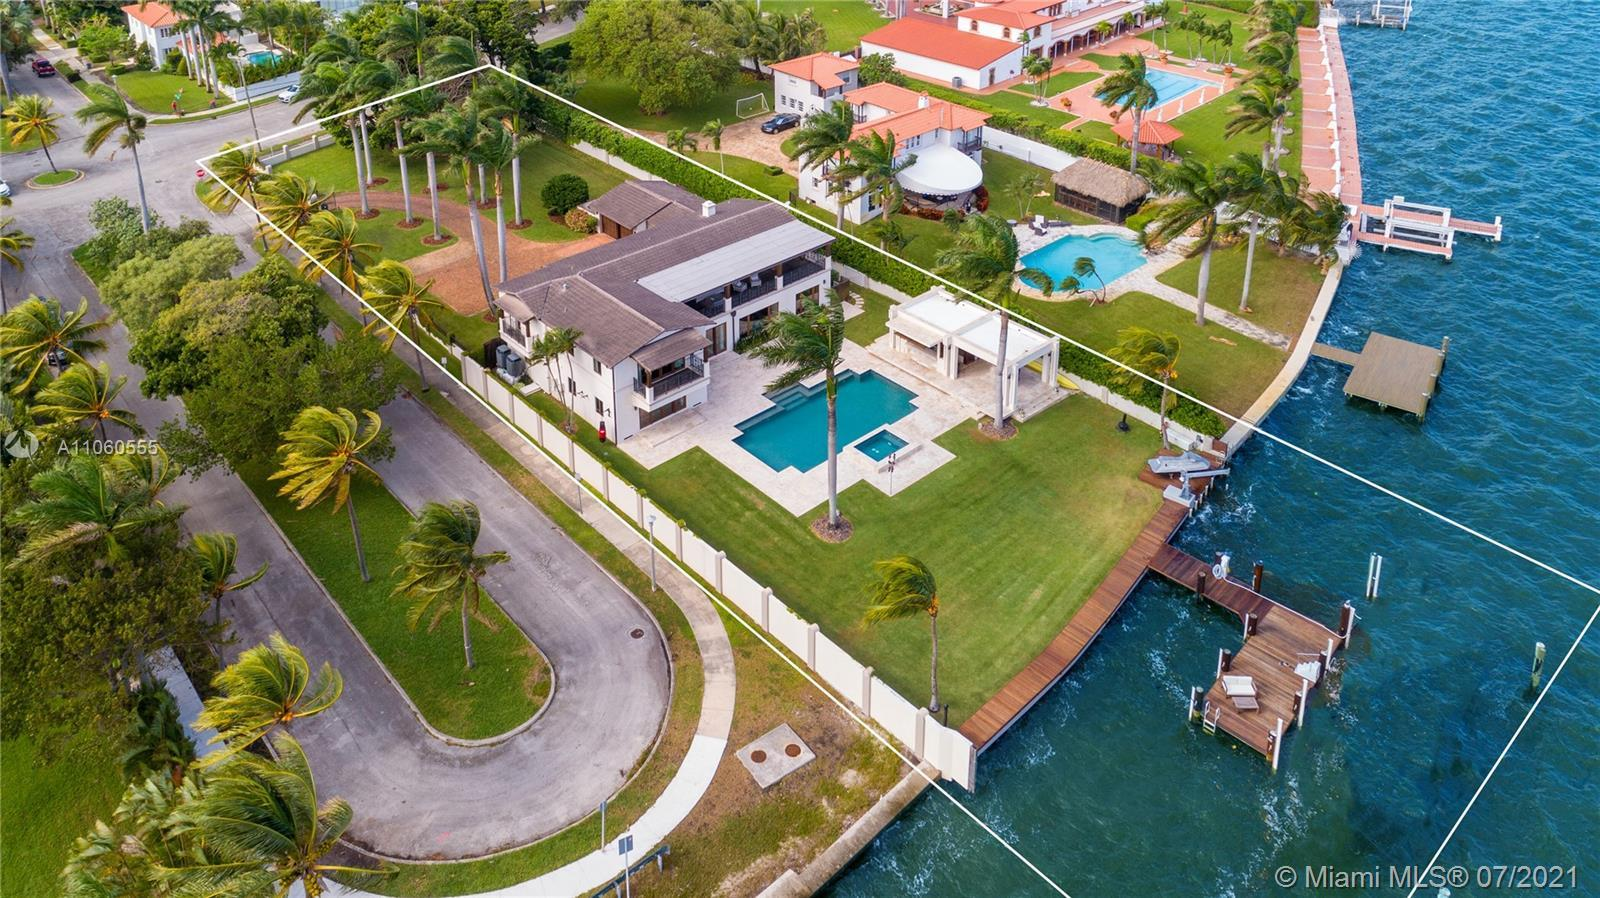 Majestic Estate located in Historic Morningside on a gated 31,100 SF corner lot surrounded by lush g